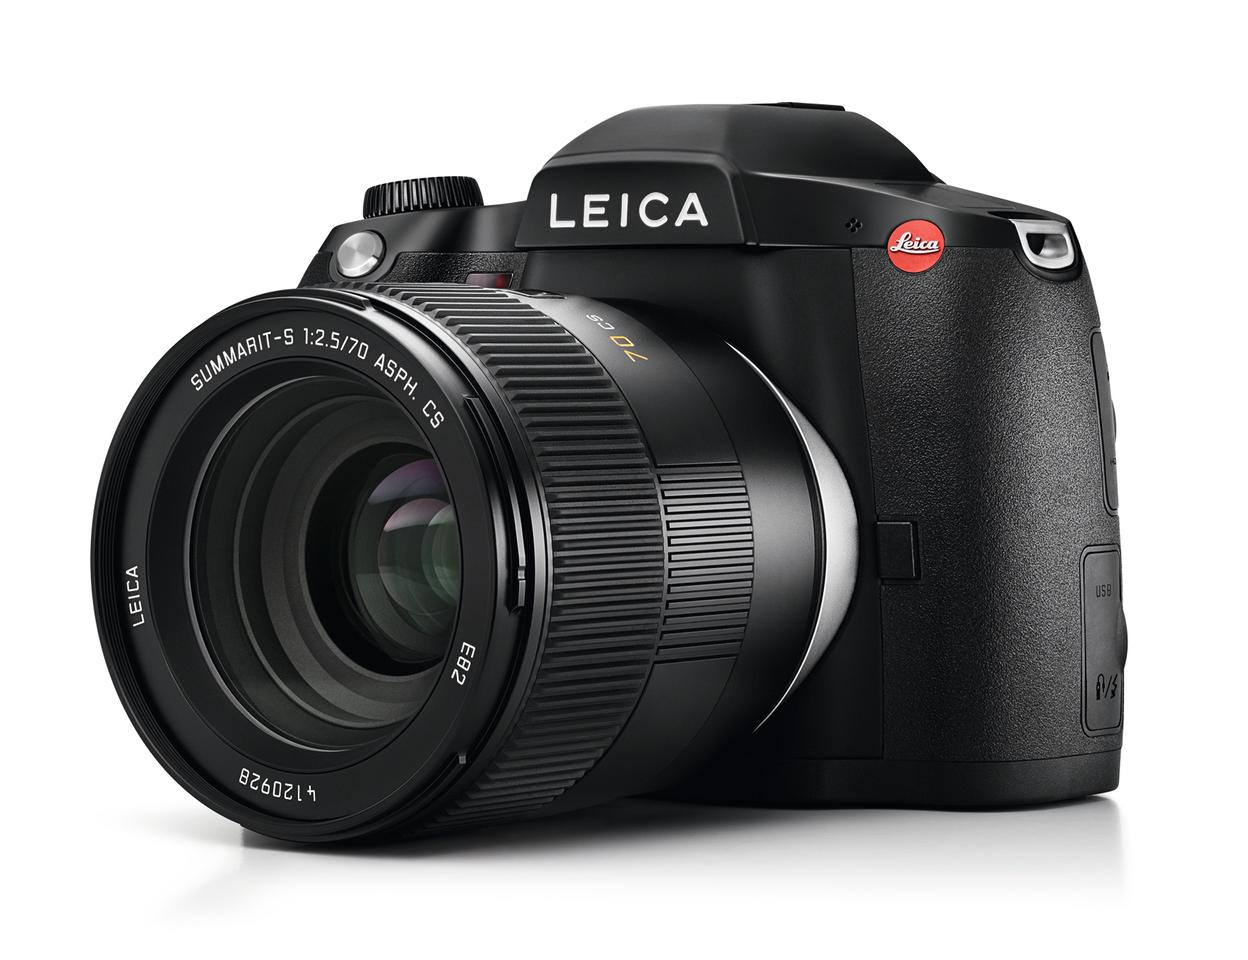 The production Leica S3 medium format DLSR looks pretty much the same as the model we saw at Photokina 2018